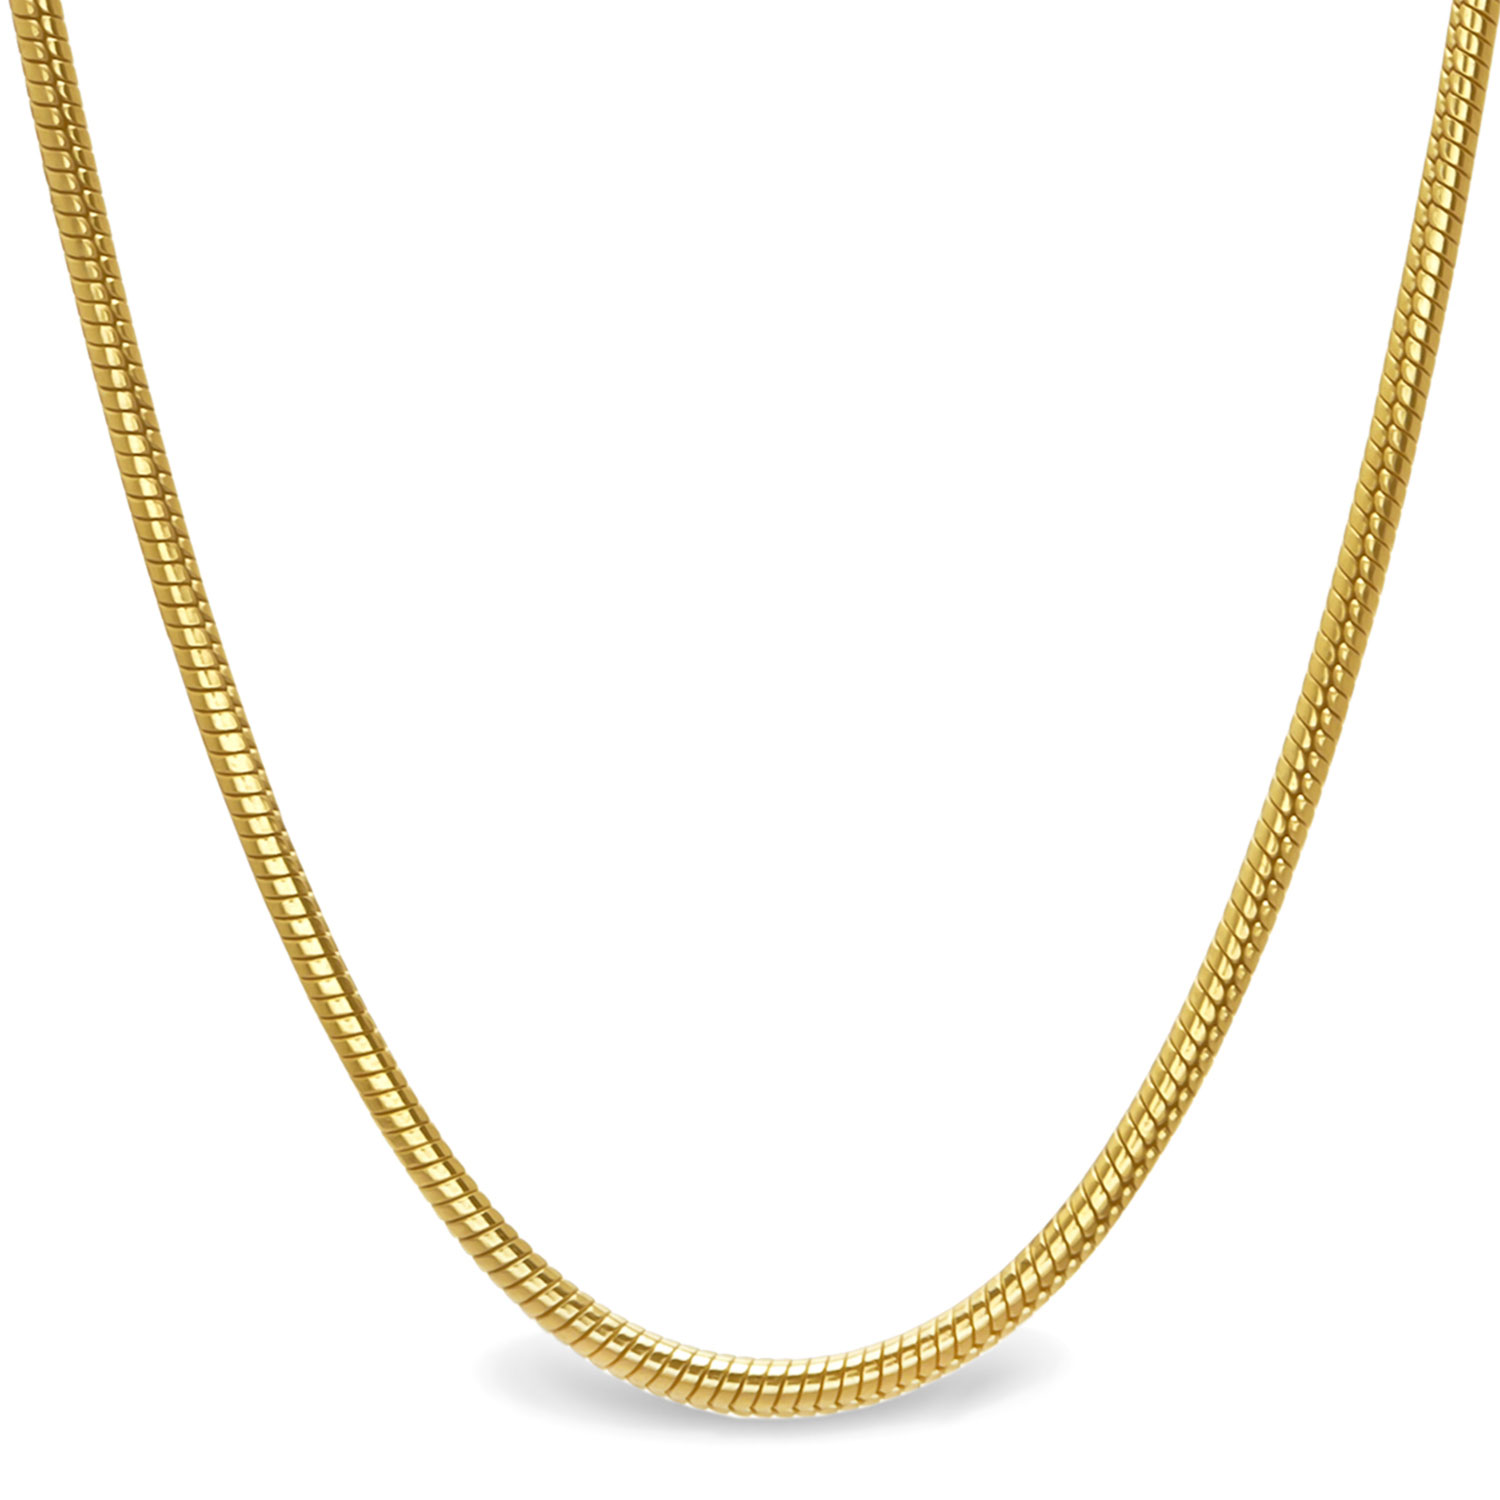 Classic Round Snake 14k Gold Necklace - 16 in.